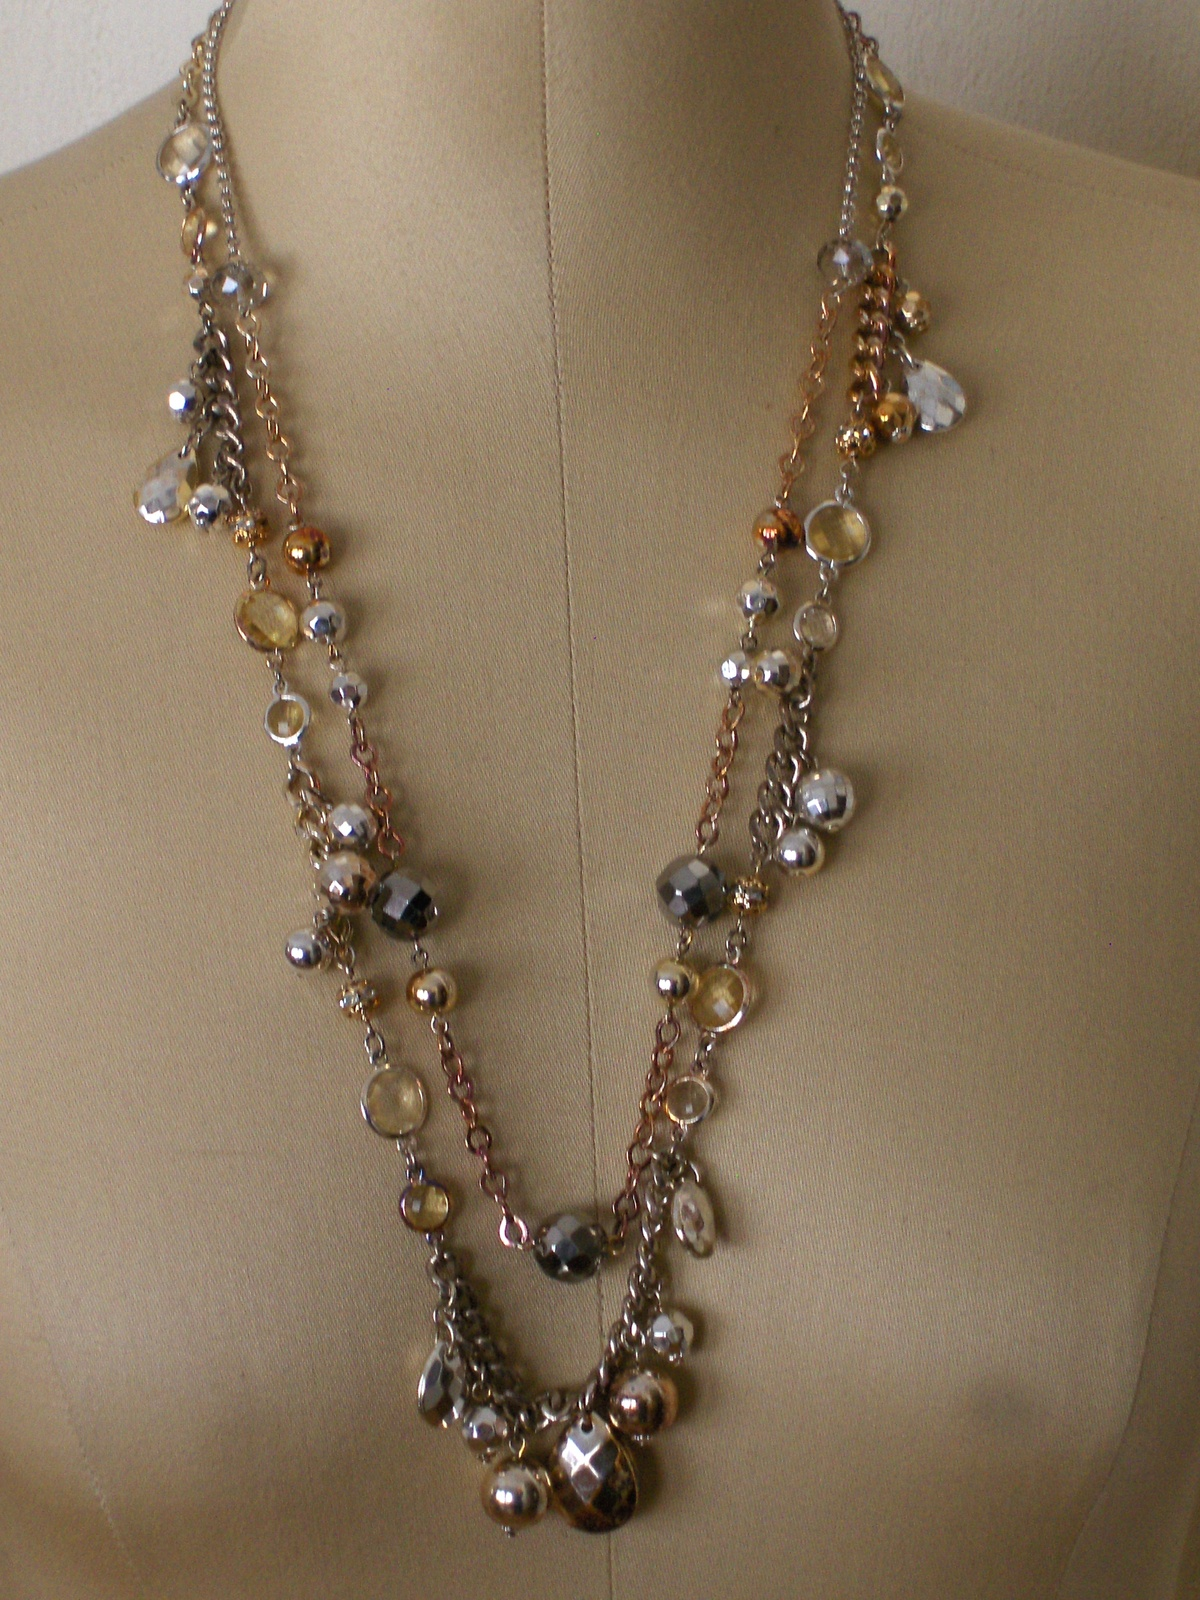 White House Black Market Necklace Faceted Beads and Crystals 29 Inch